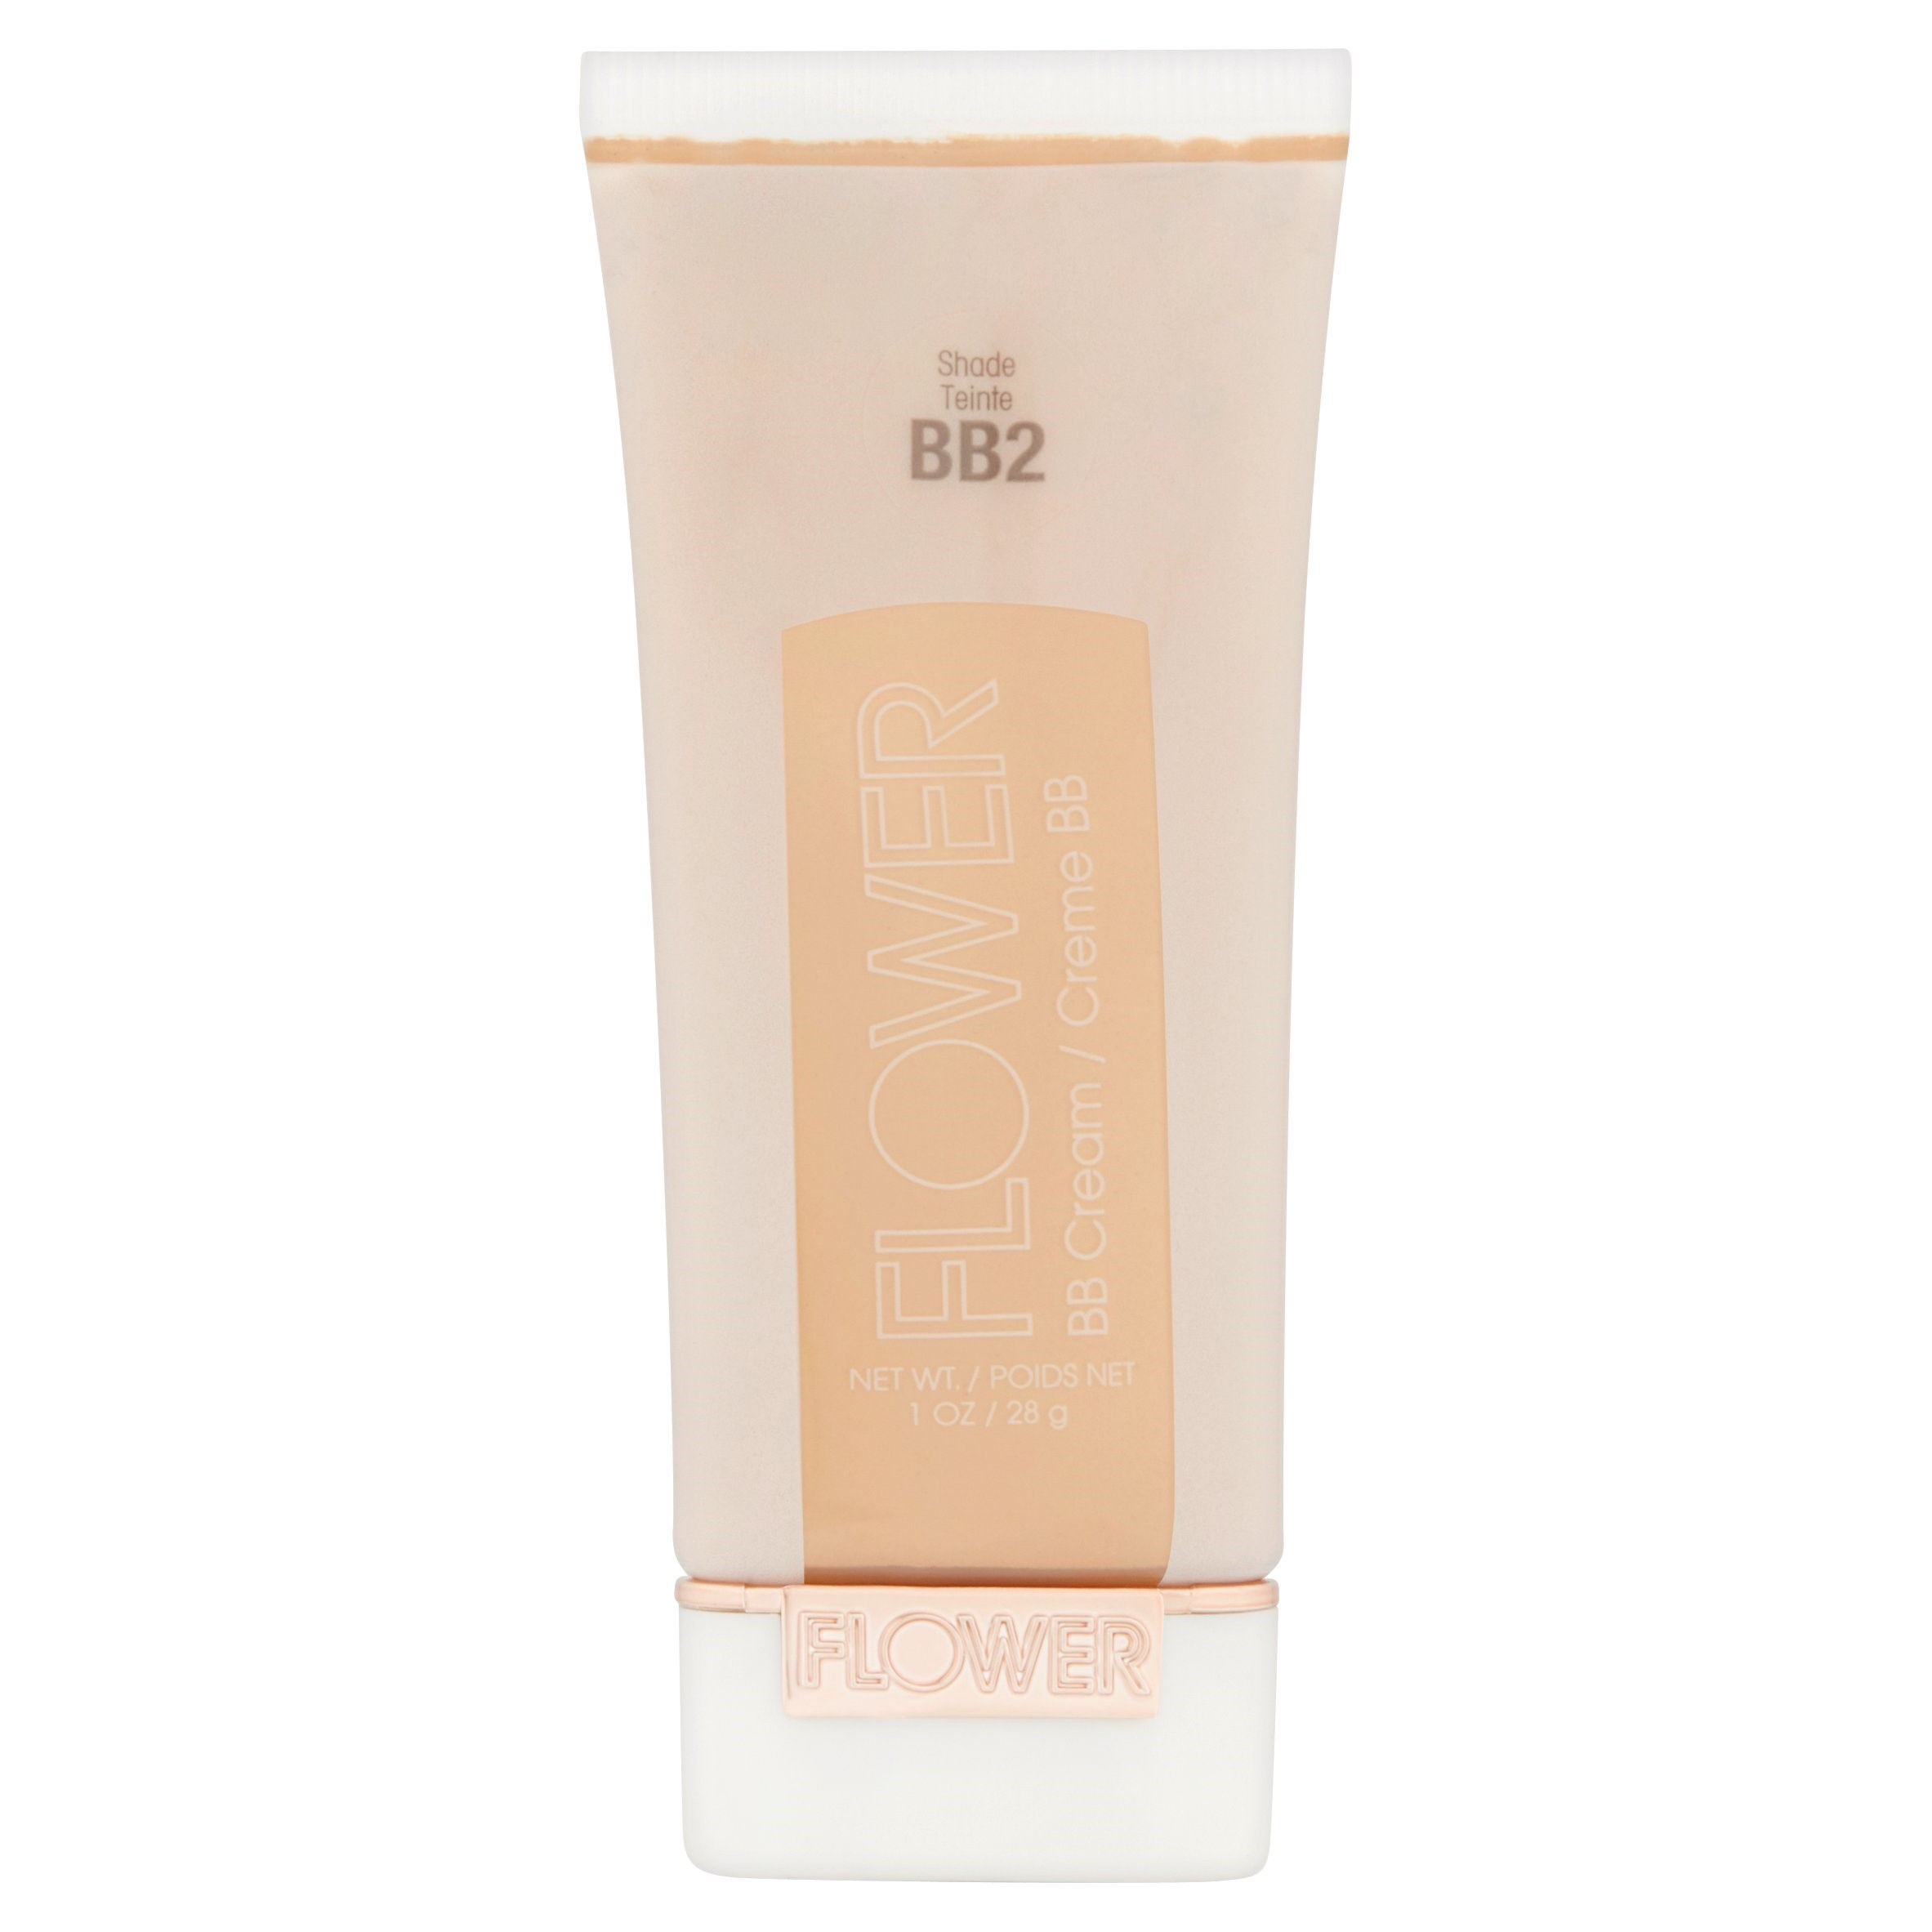 Flower Shade BB2 BB Cream, 1 oz